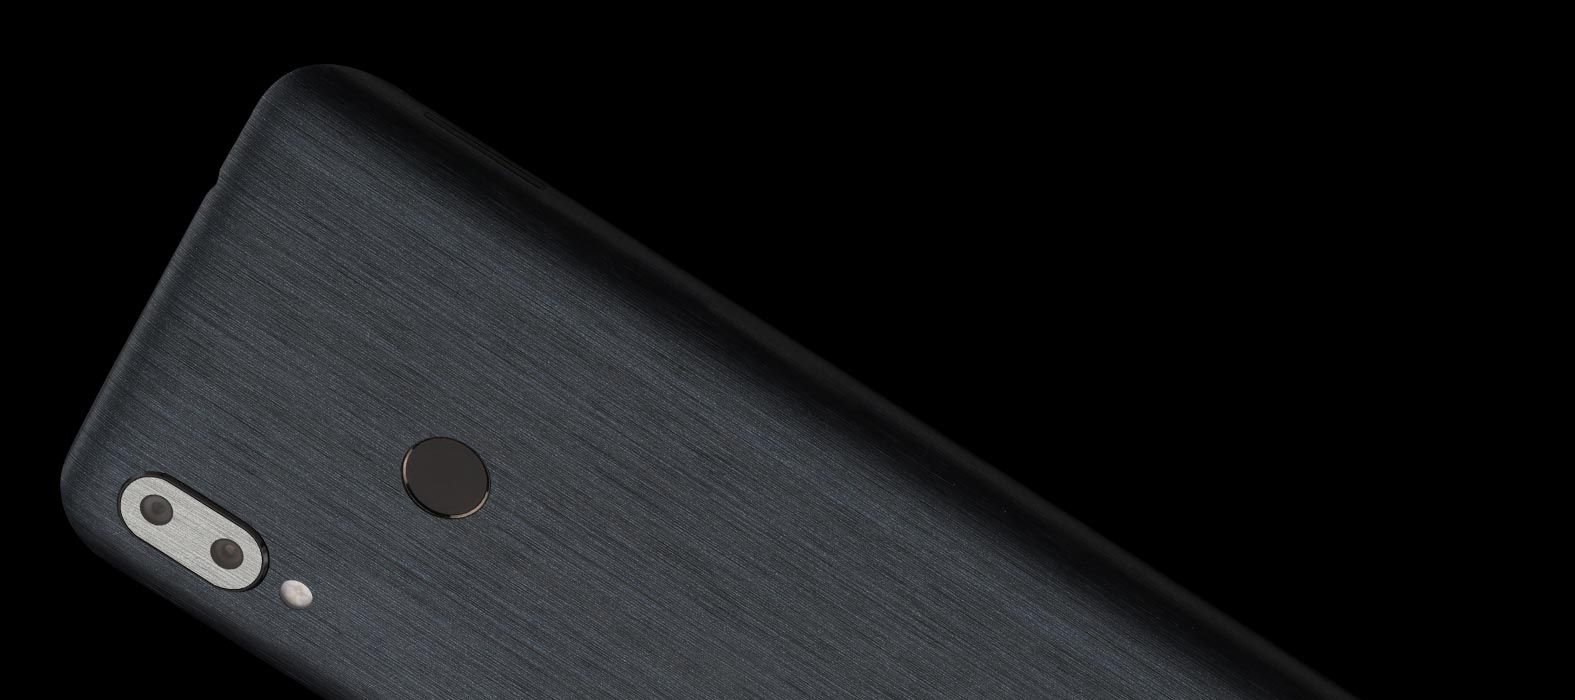 Redmi-note-7-pro_Brushed-Graphite_Skins